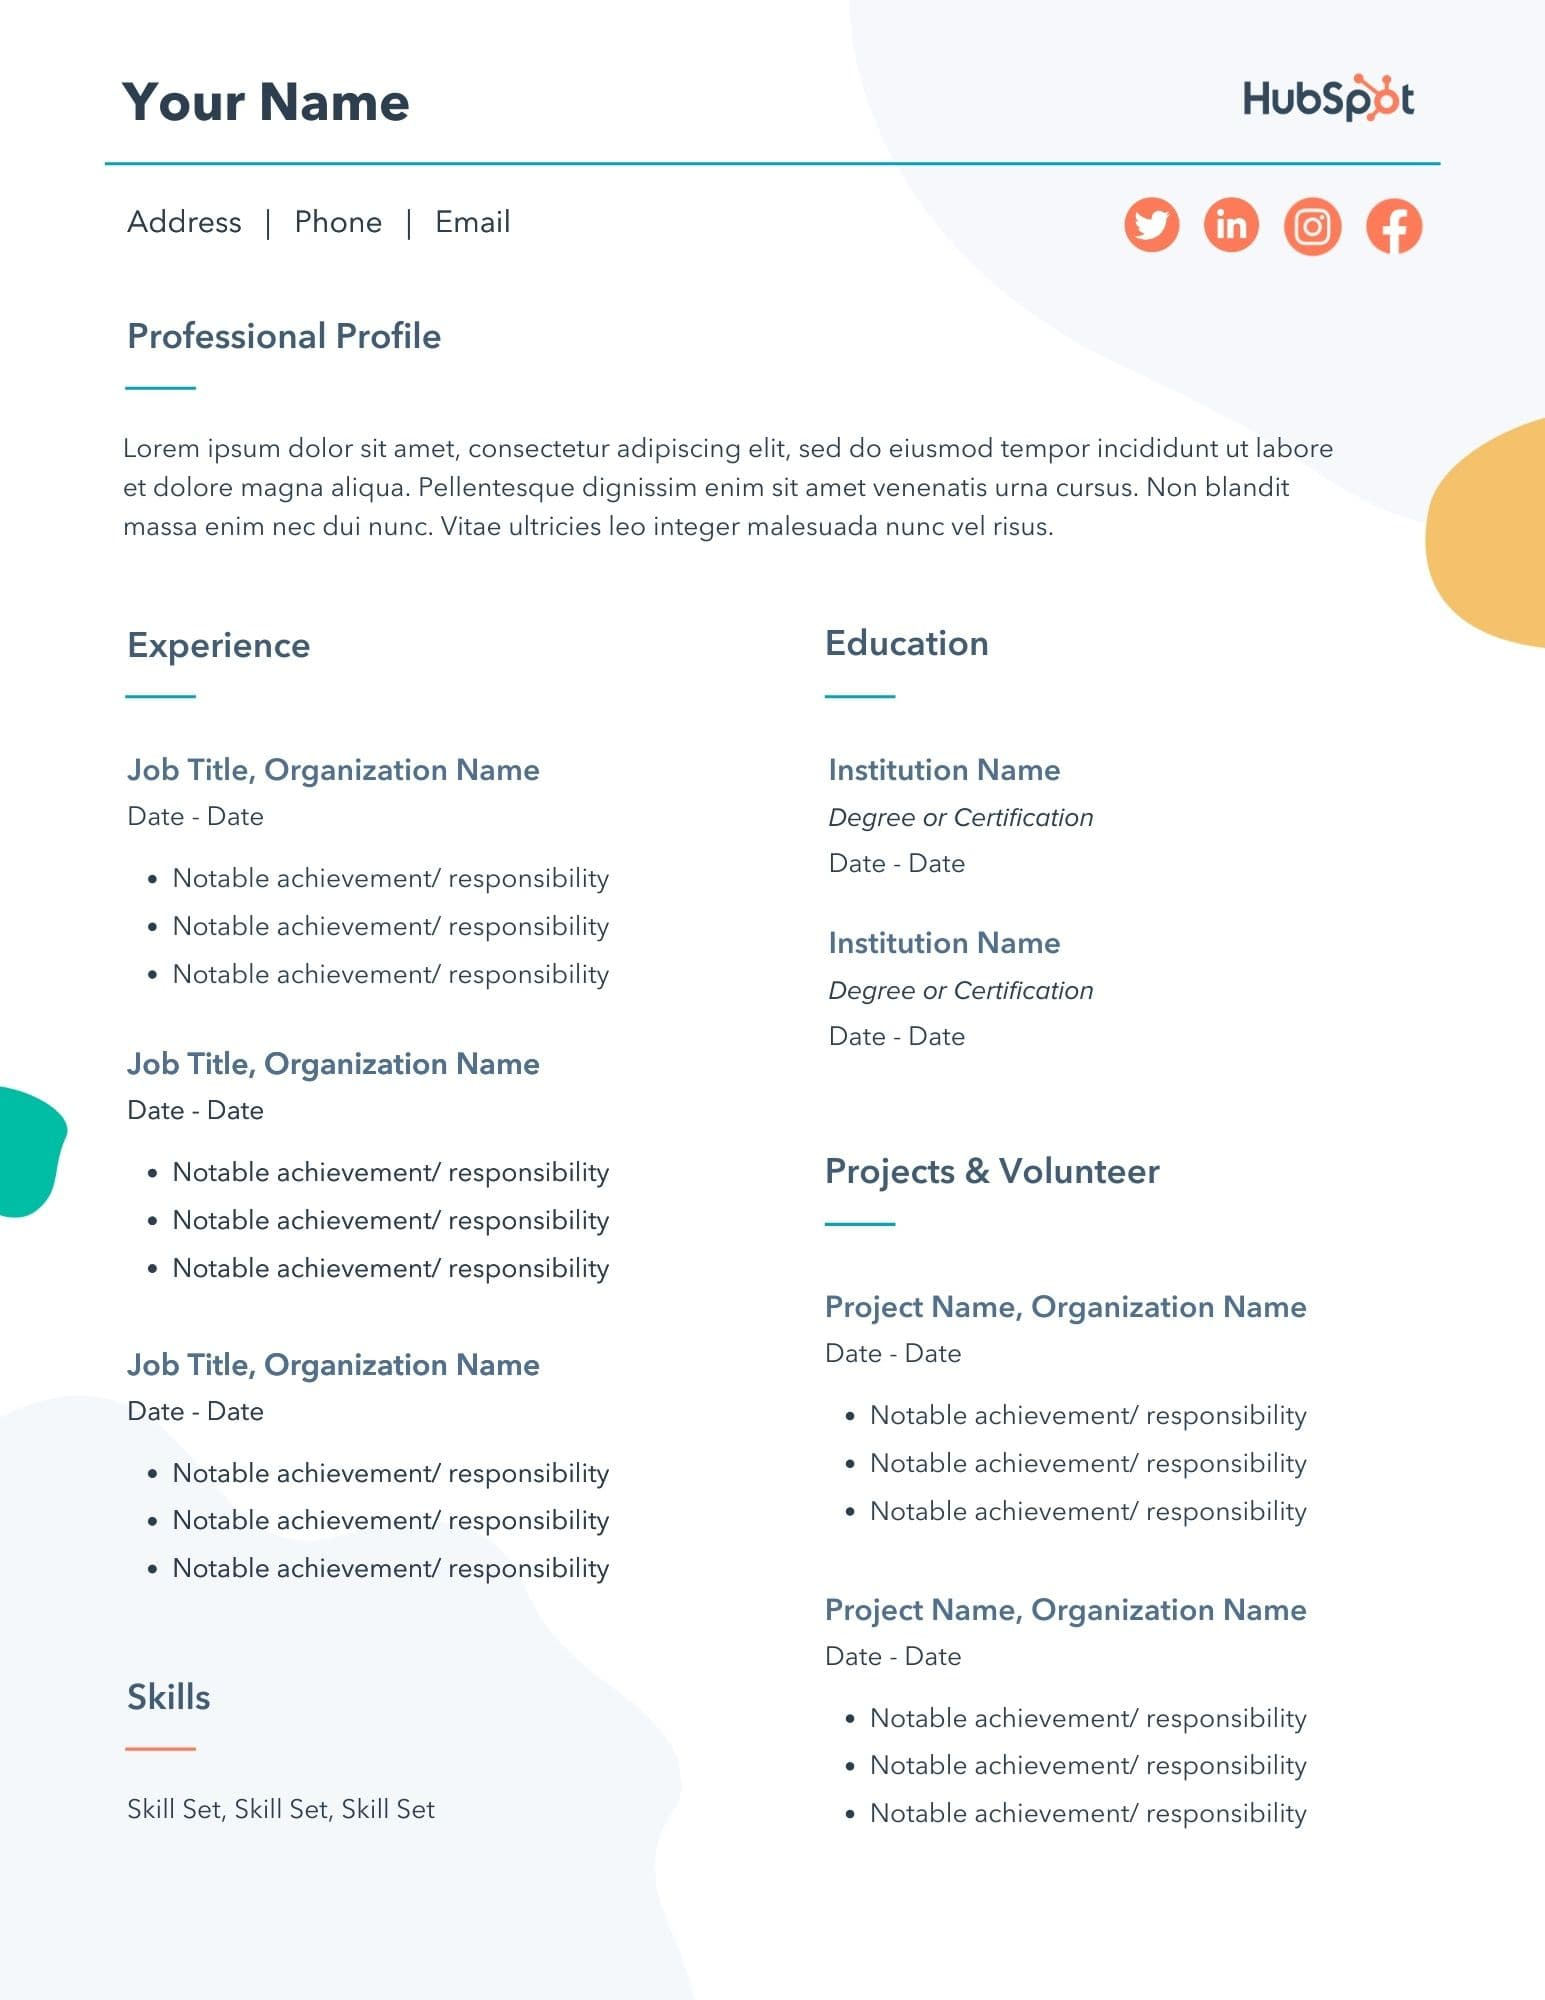 free resume templates for microsoft word to make your own current template softball Resume Free Current Resume Templates